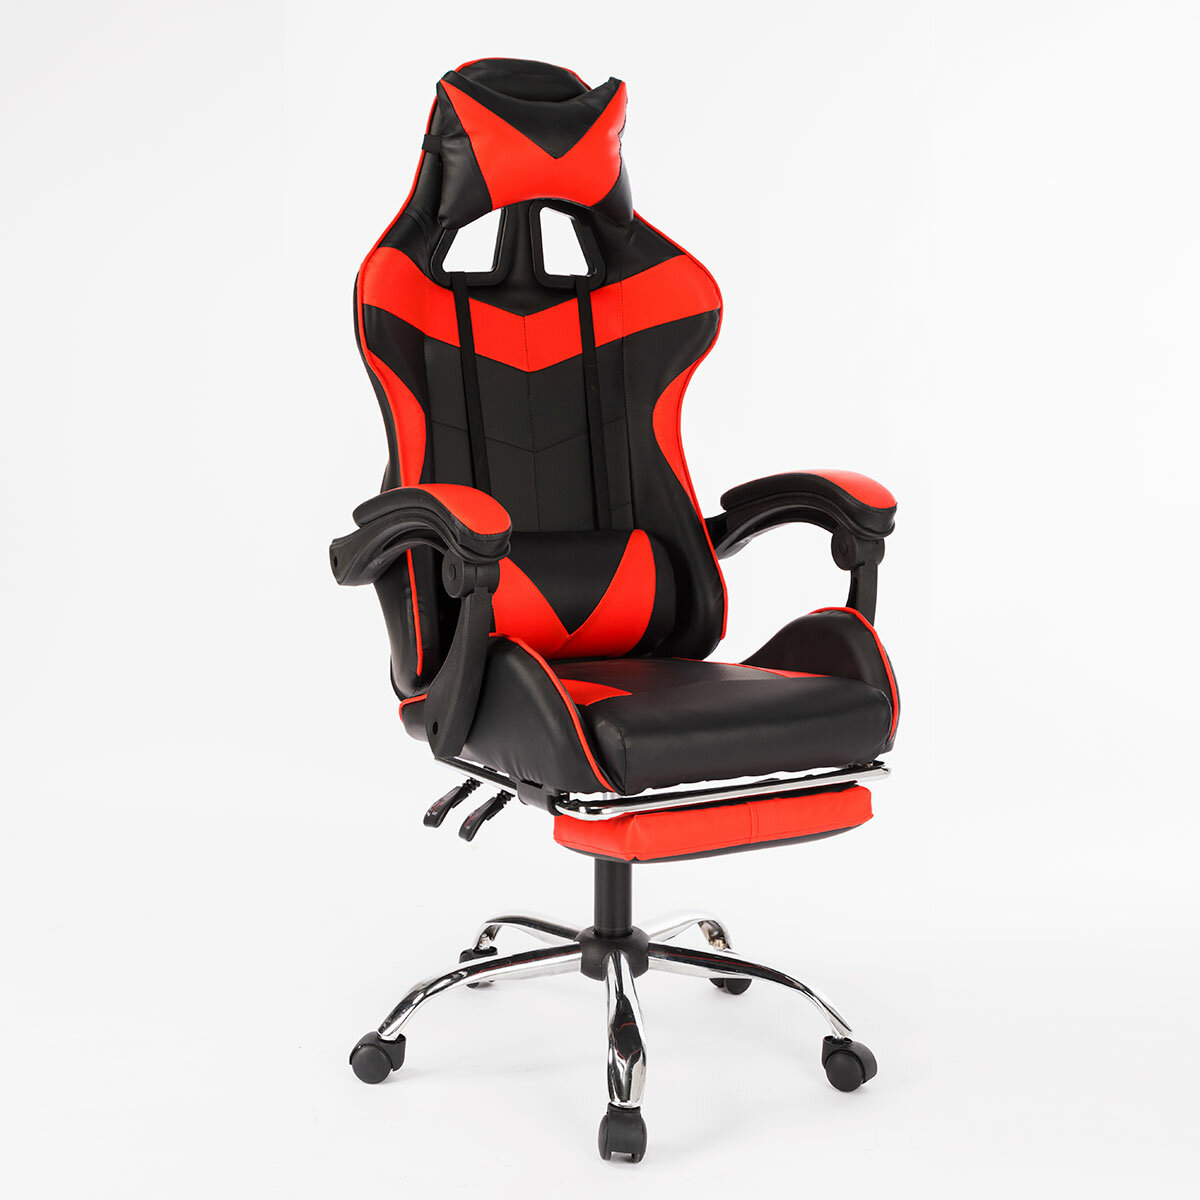 Ergonomic High Back Racing Style Reclining Office Chair Adjustable Rotating Lift Chair Pu Leather Gaming Chair Laptop Desk Chair With Footrest Sale Banggood Com